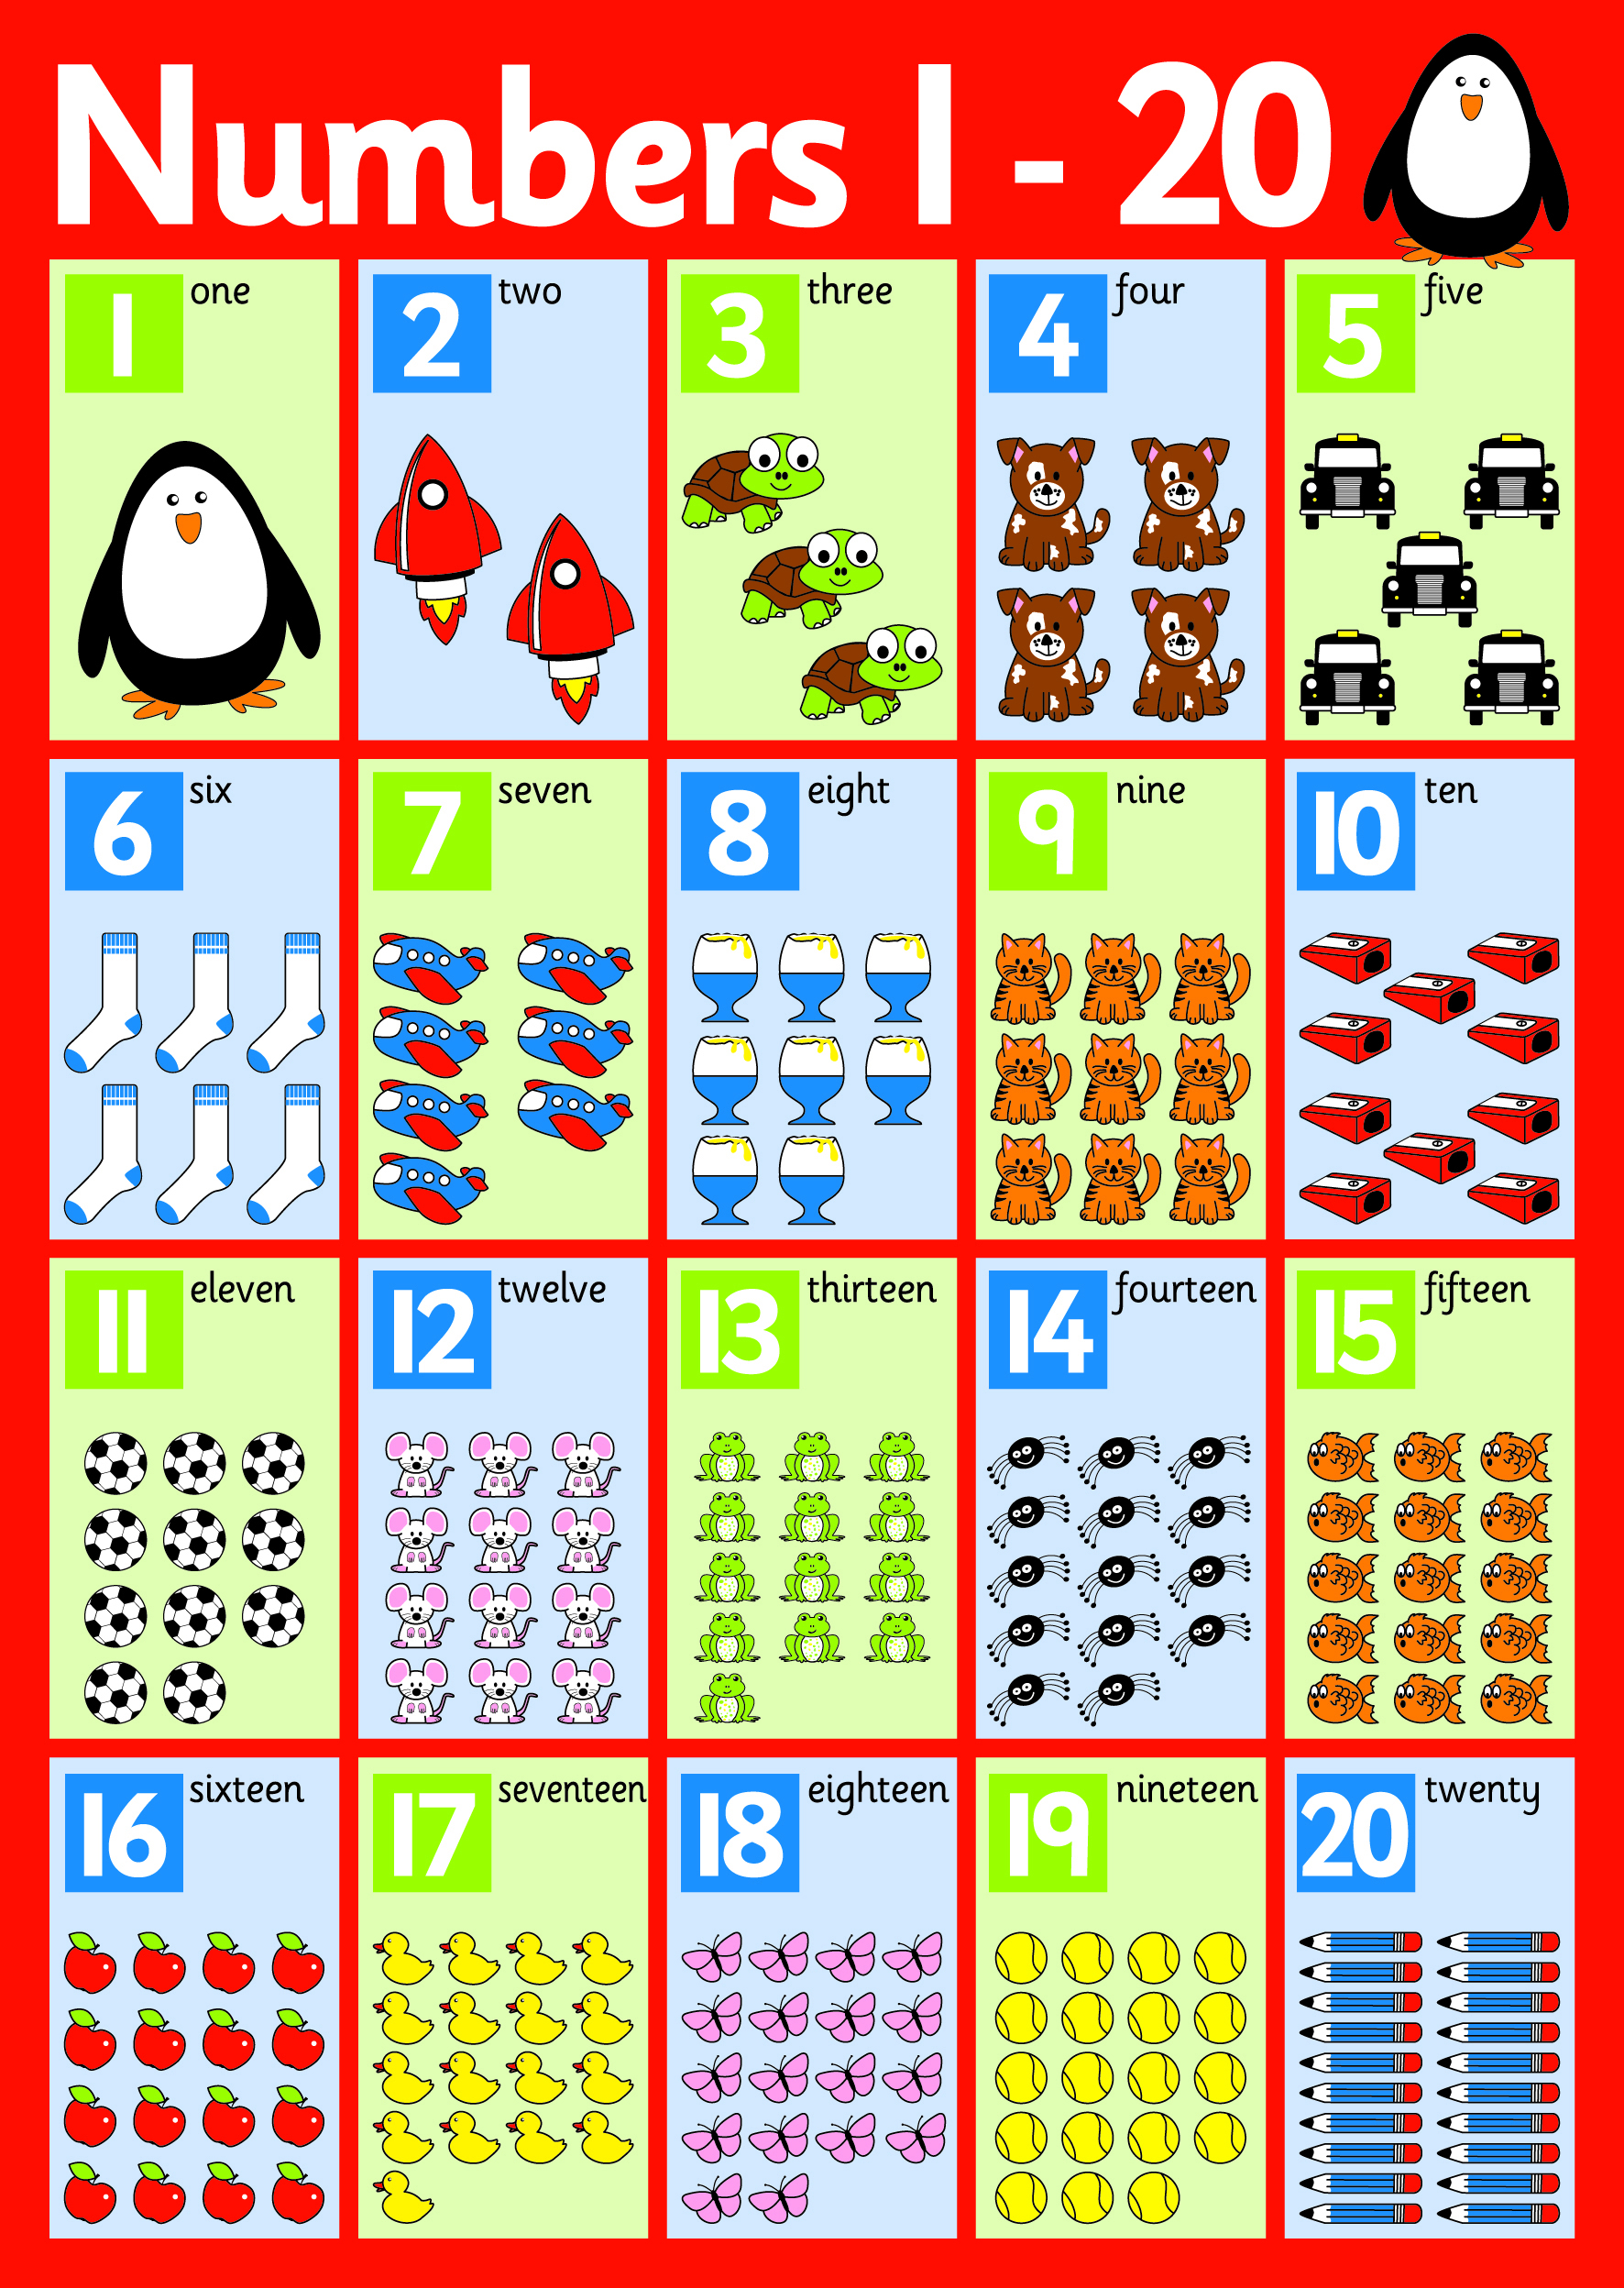 This is a picture of Clever Printable Number Line 1-20